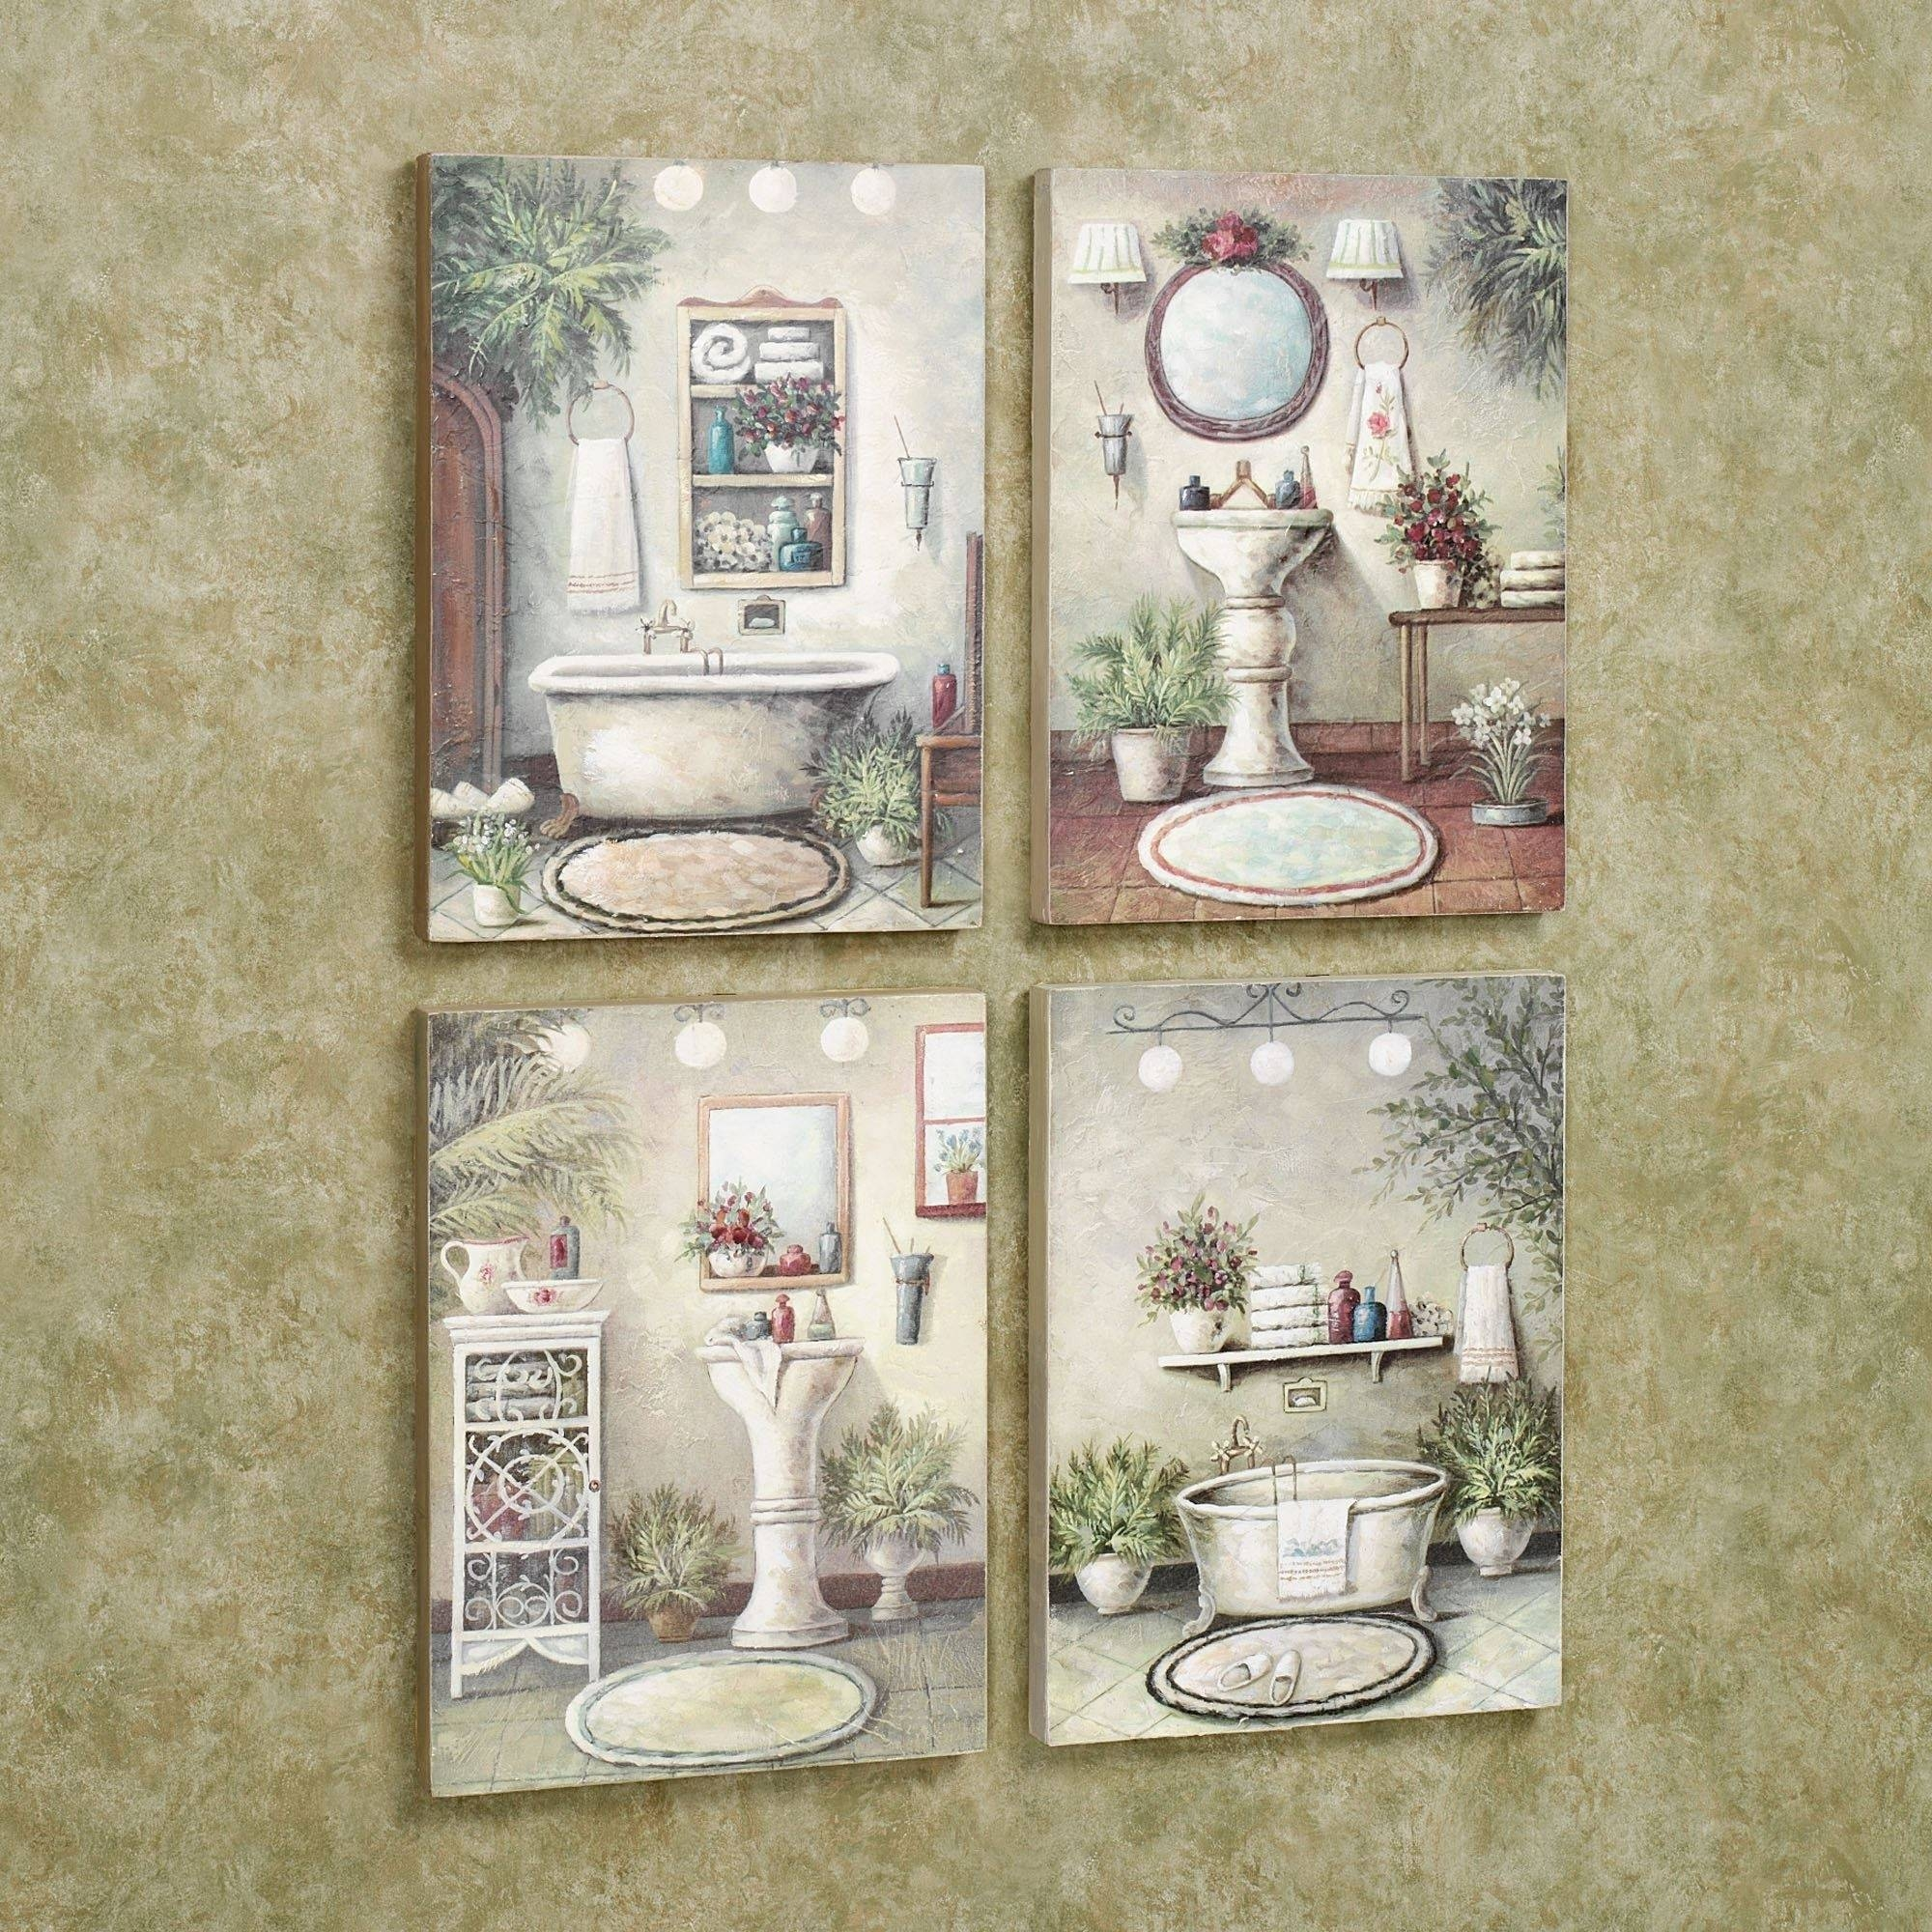 Ideas For Cozy Bathroom Wall Decor — The Decoras Jchansdesigns Throughout Most Current Metal Wall Art For Bathroom (View 8 of 25)